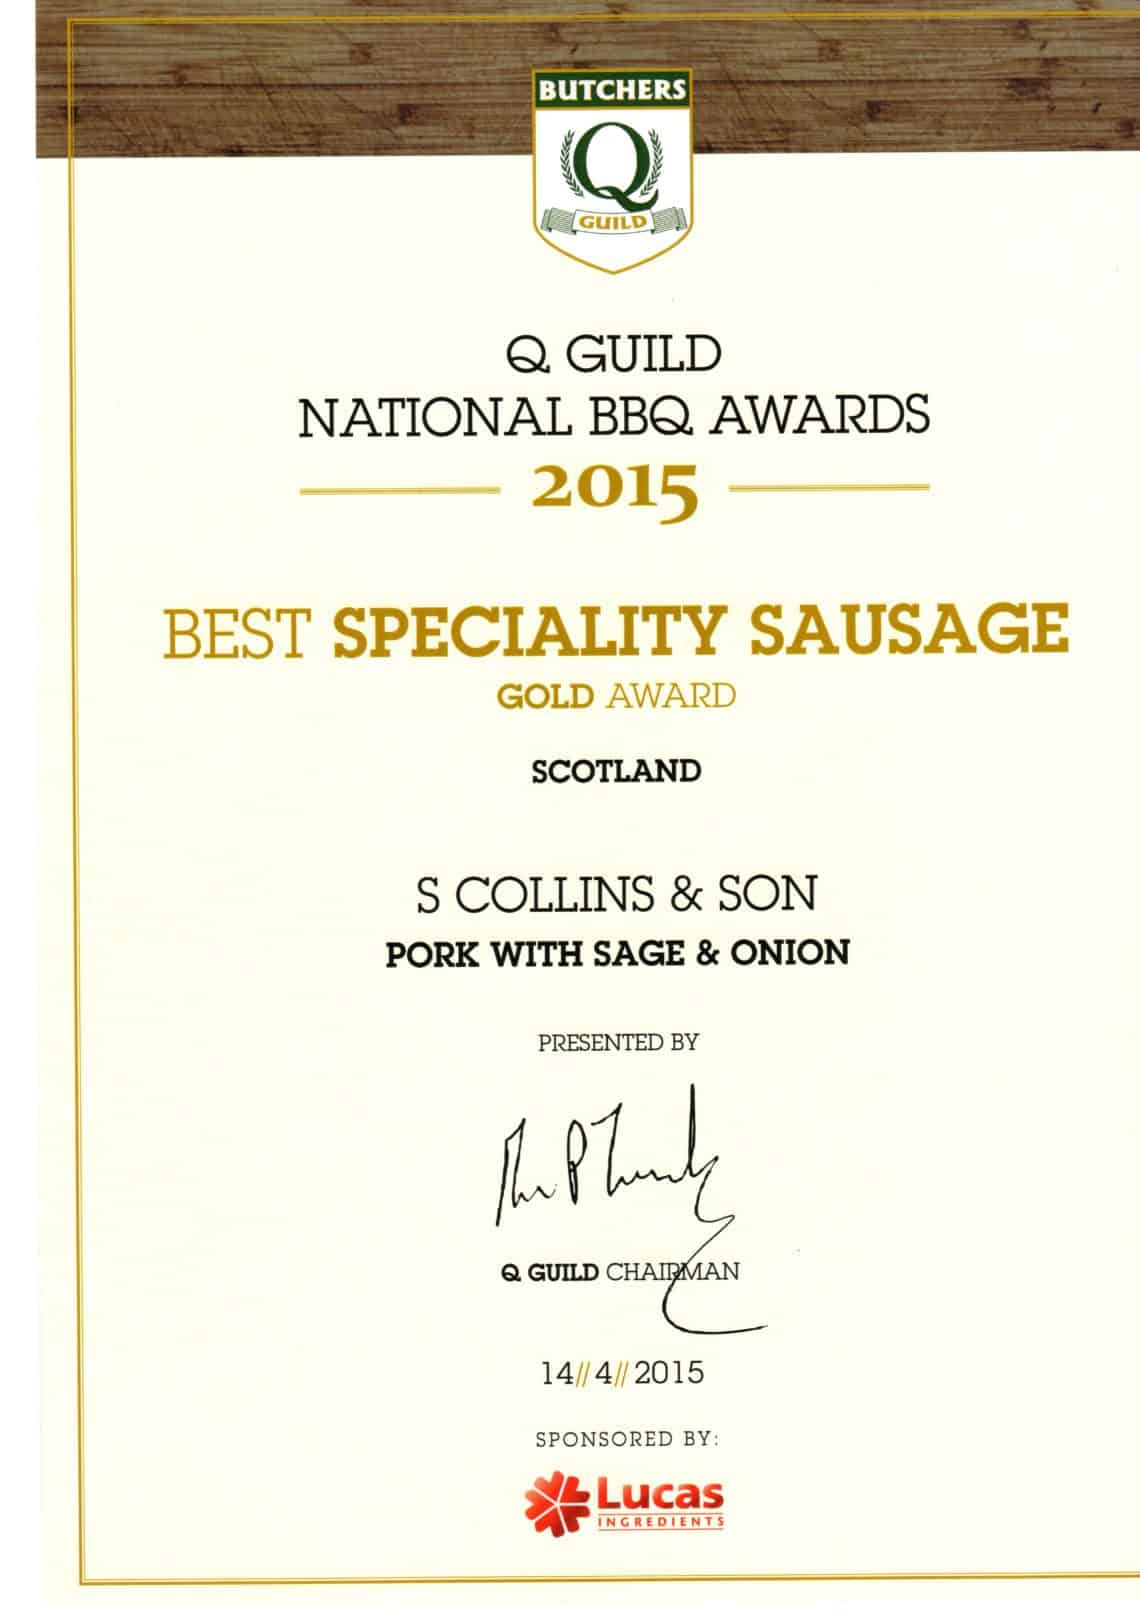 National BBQ Awards 2015: Best Specialty Sausage